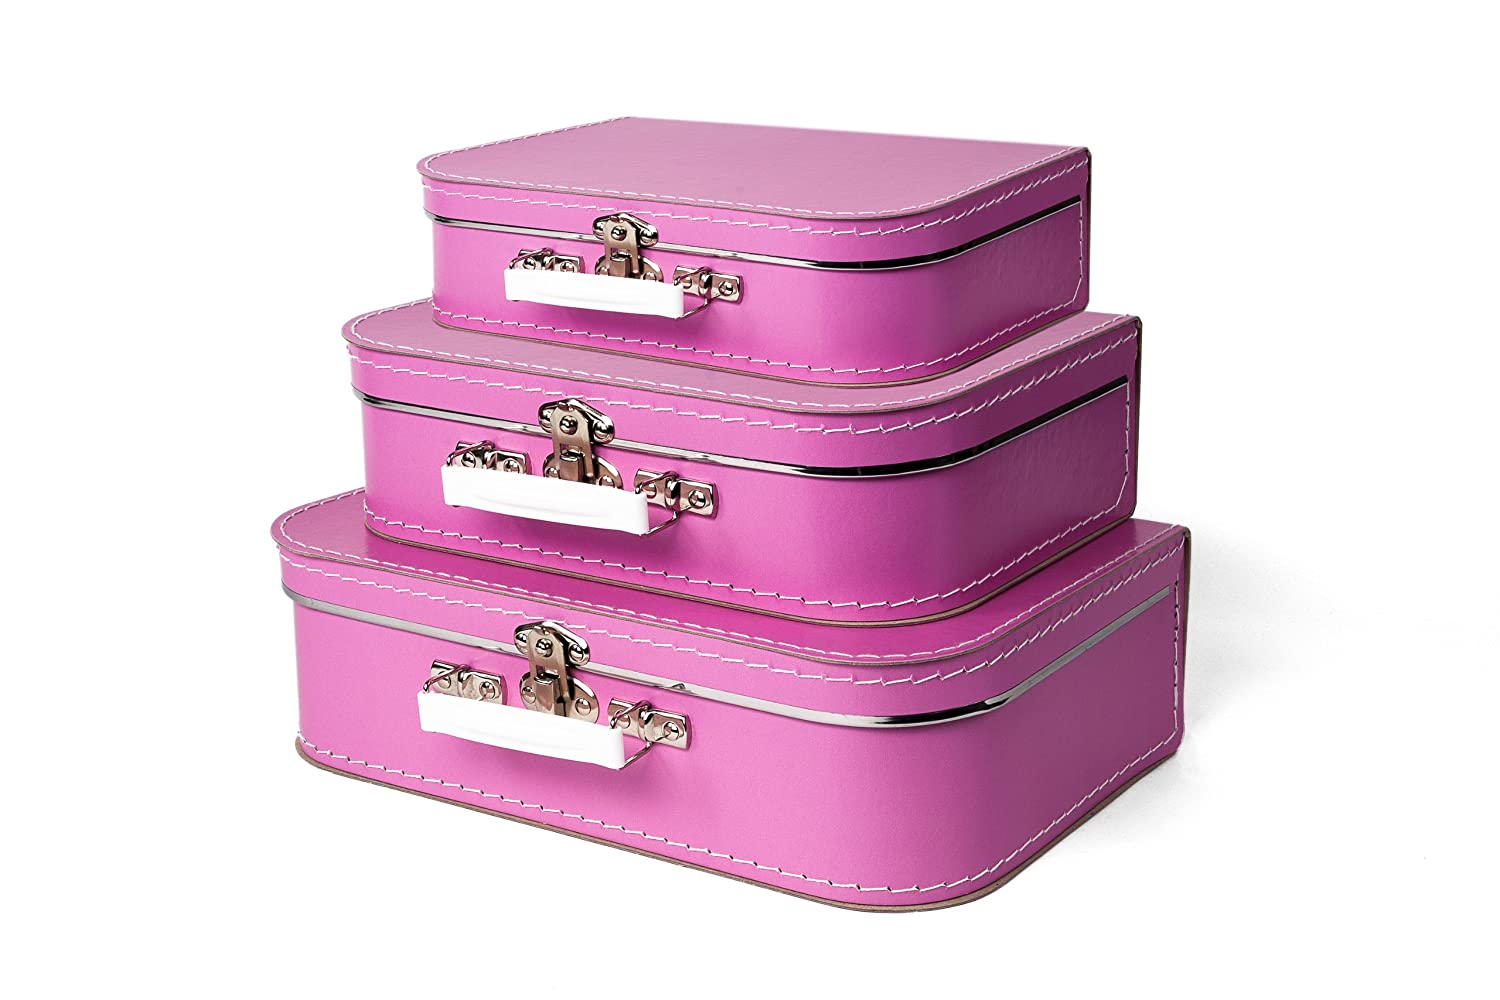 49df57a4157d Bigso Children's Suitcase, Pink, Set of 3